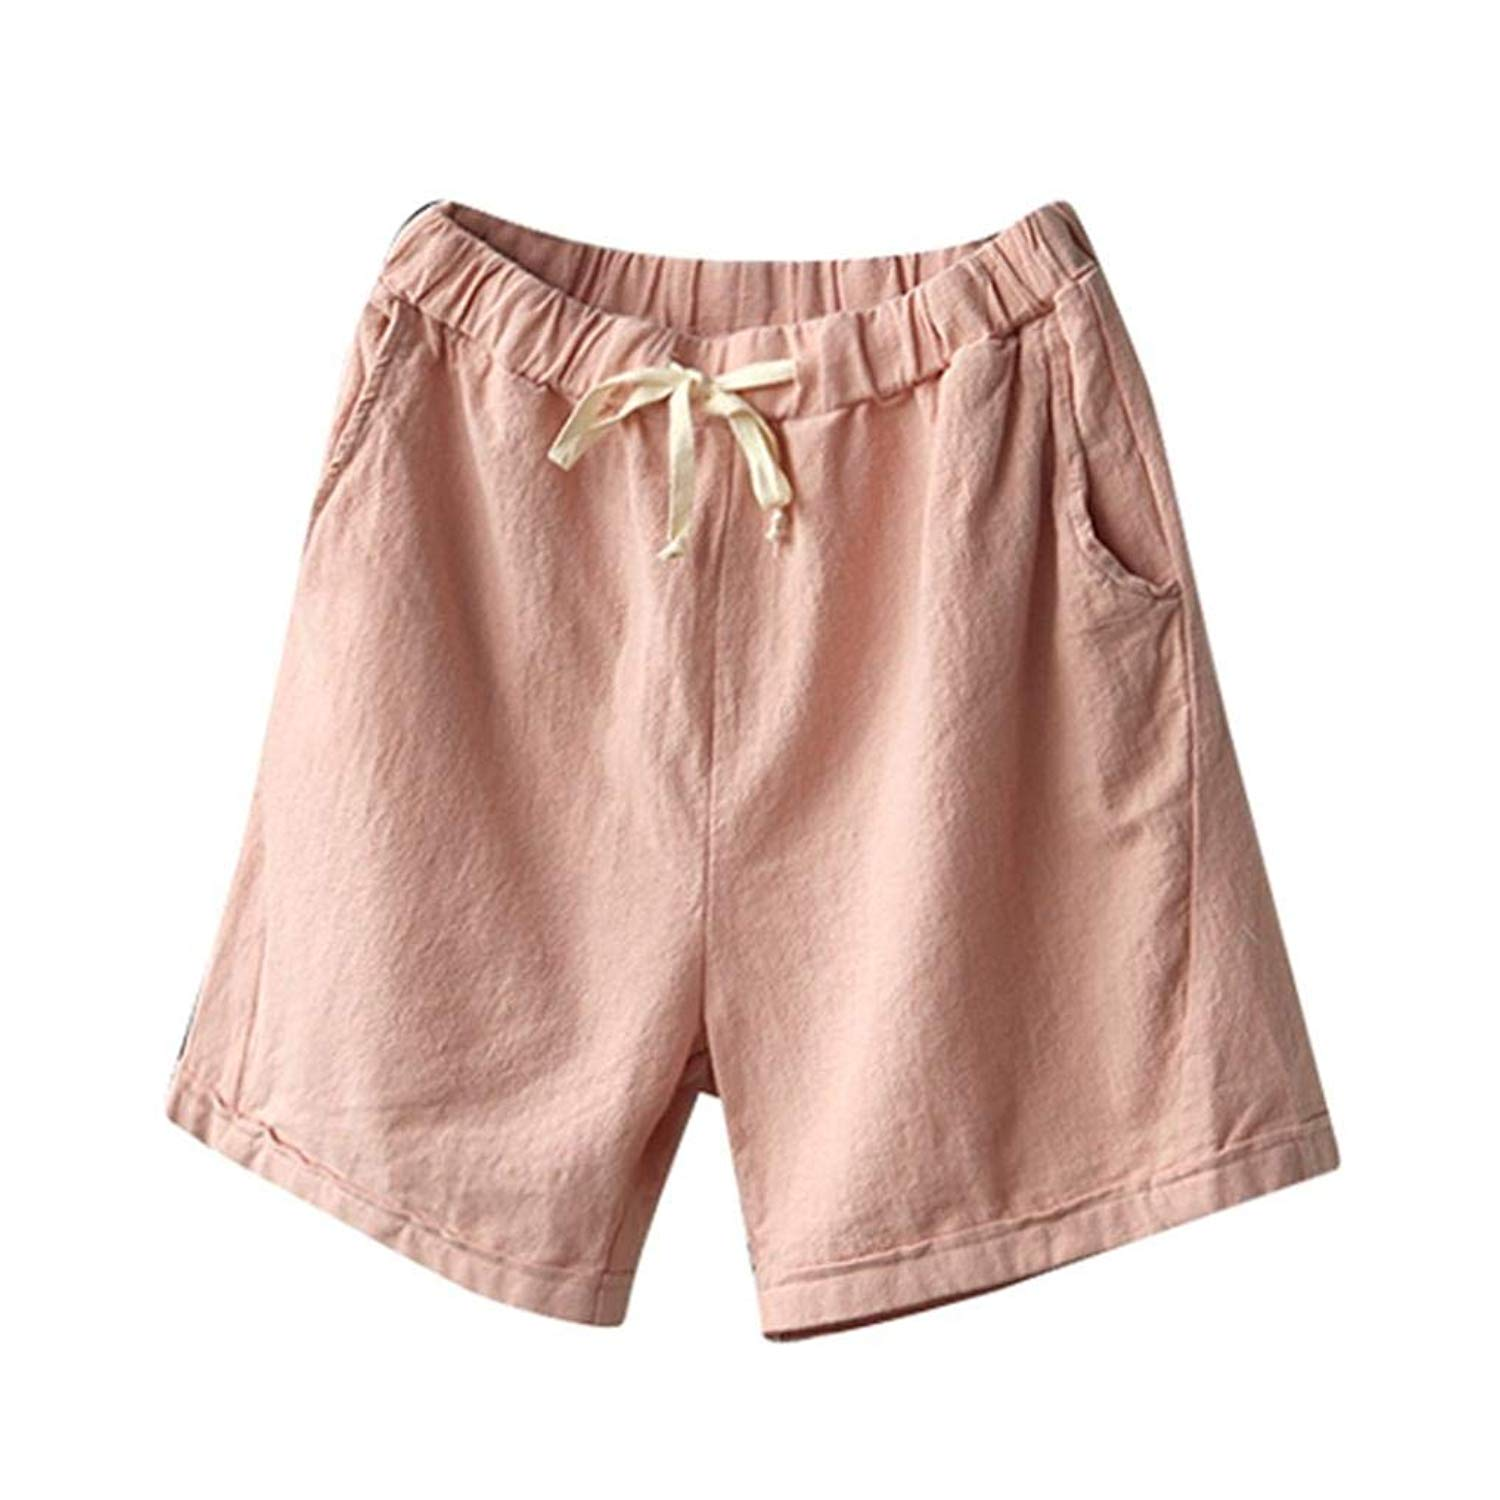 Casual Shorts,Lowprofile Women Casual Cotton Linen Pants Elastic Waist Summer Slim Lady Short Pants Short Trousers